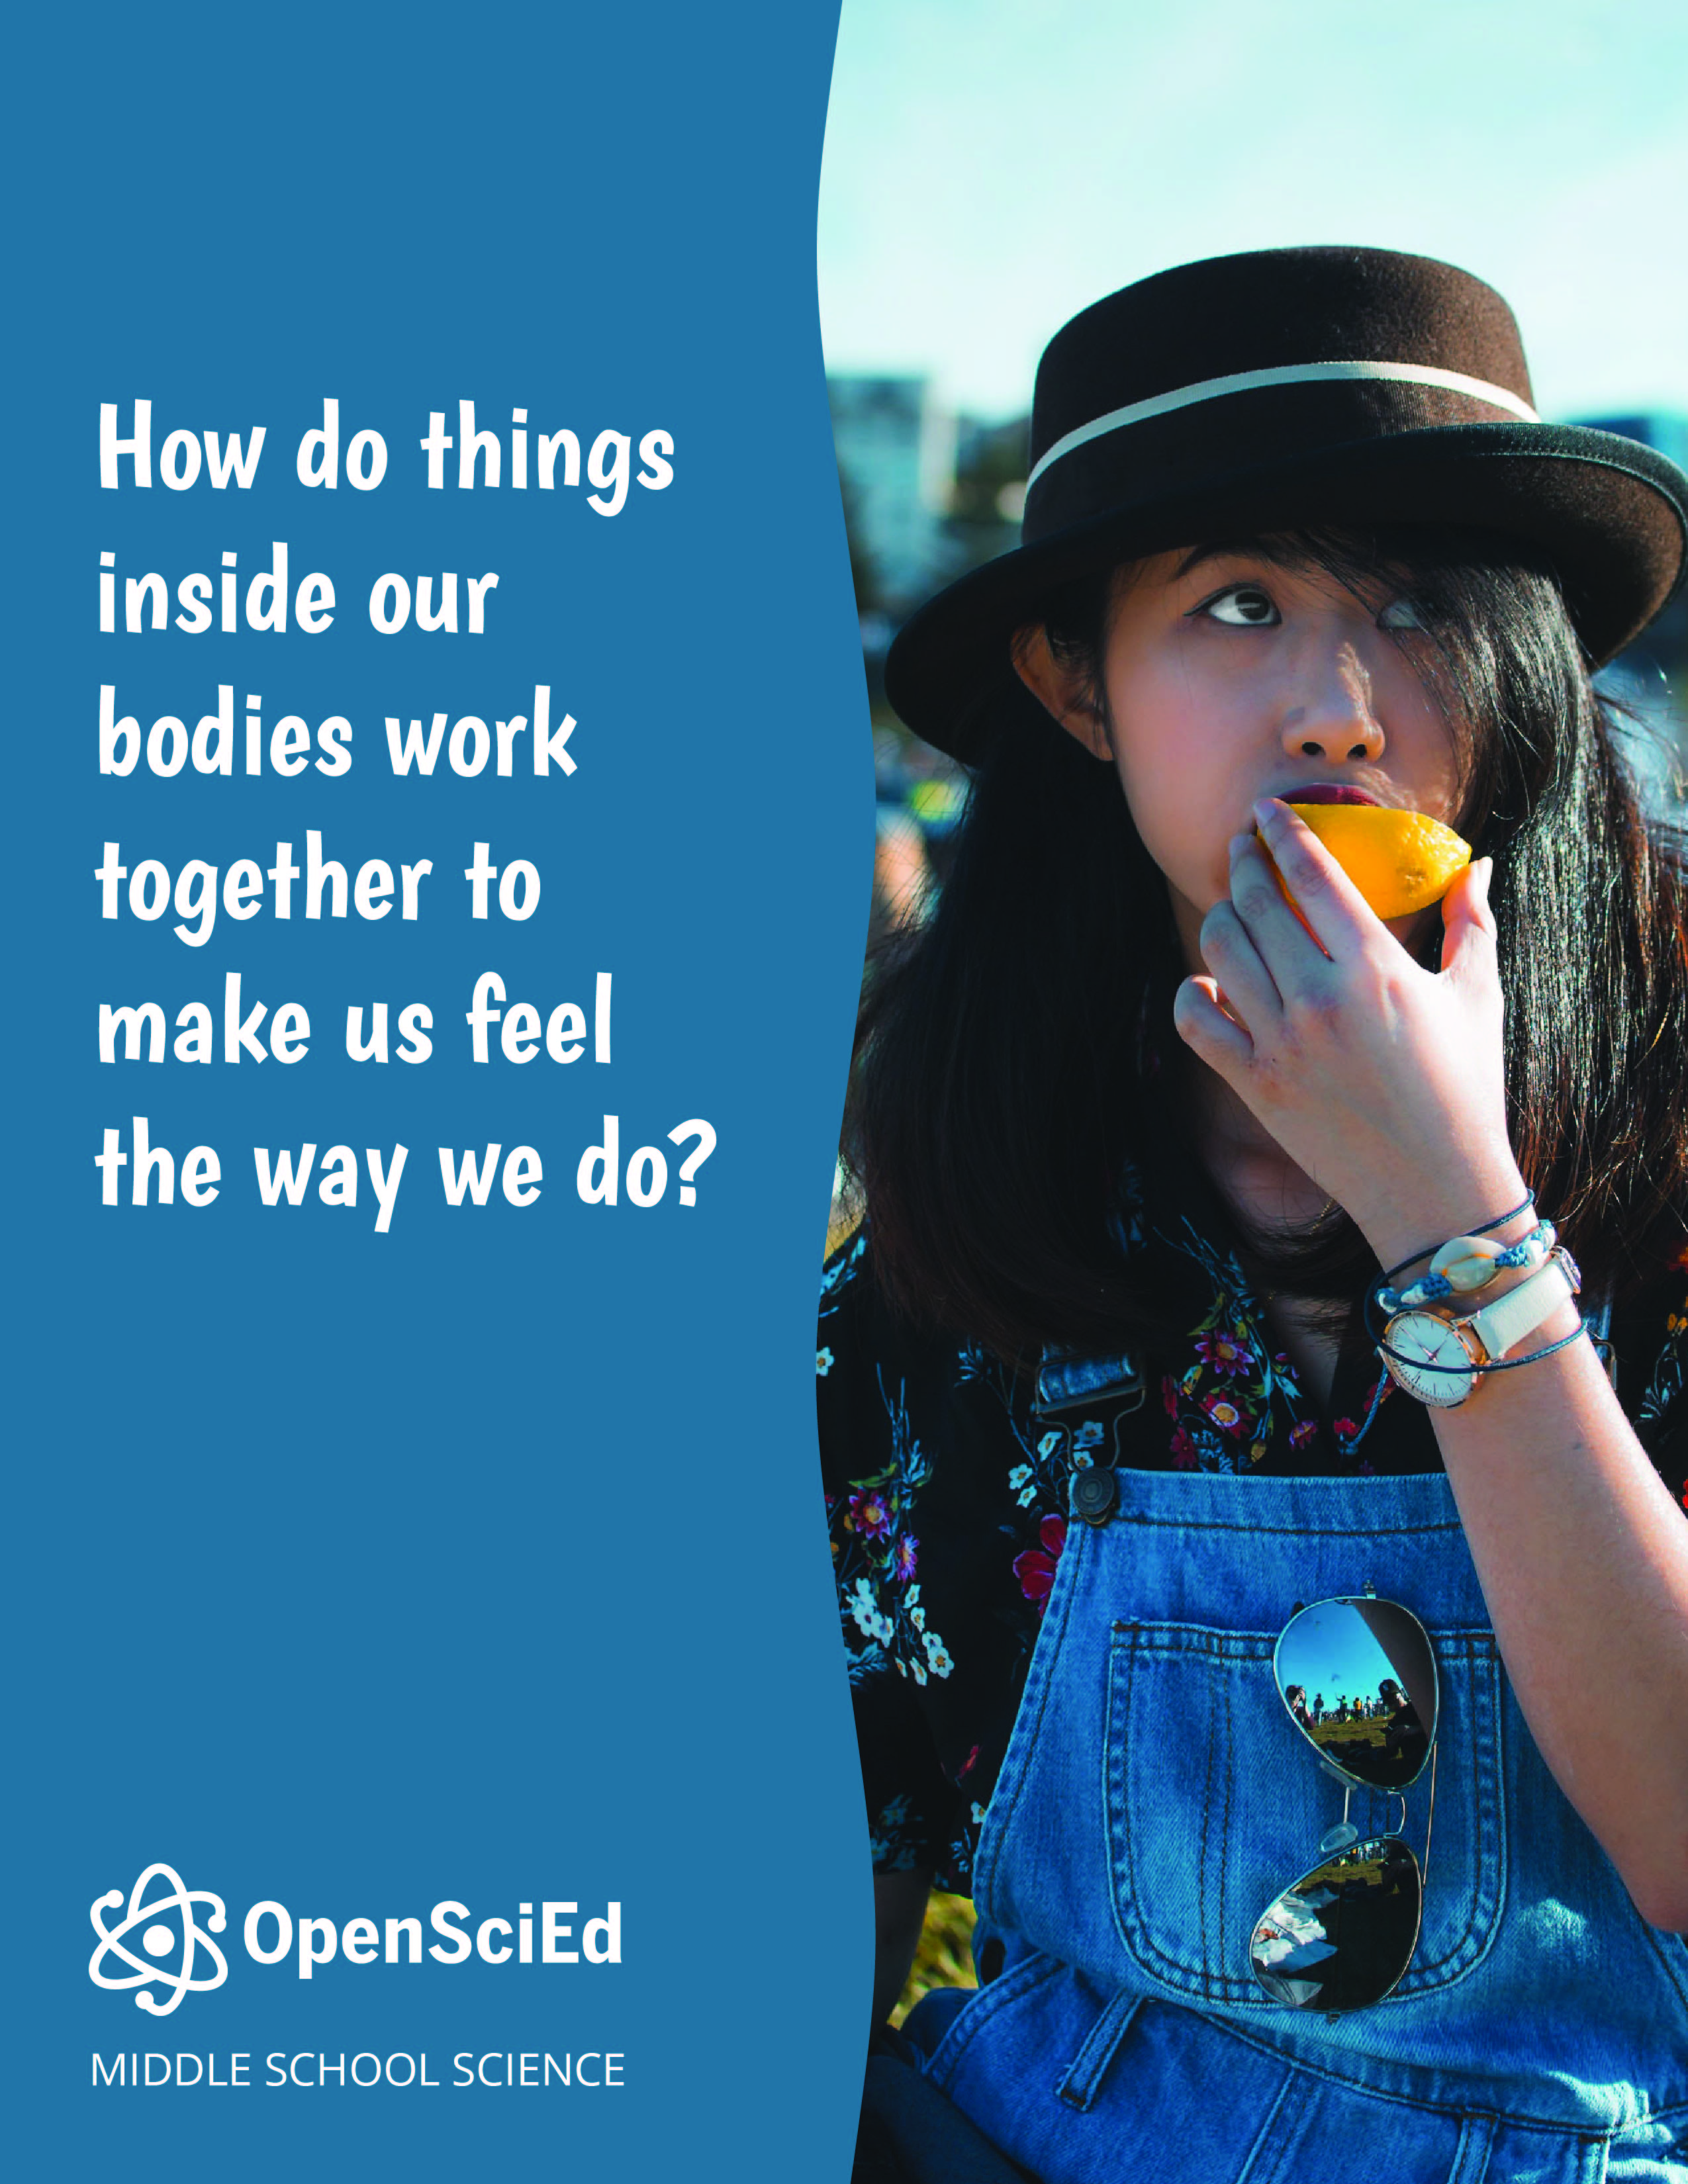 OpenSciEd Unit 7.3: How do things inside our bodies work together to make us feel the way we do? Student Edition